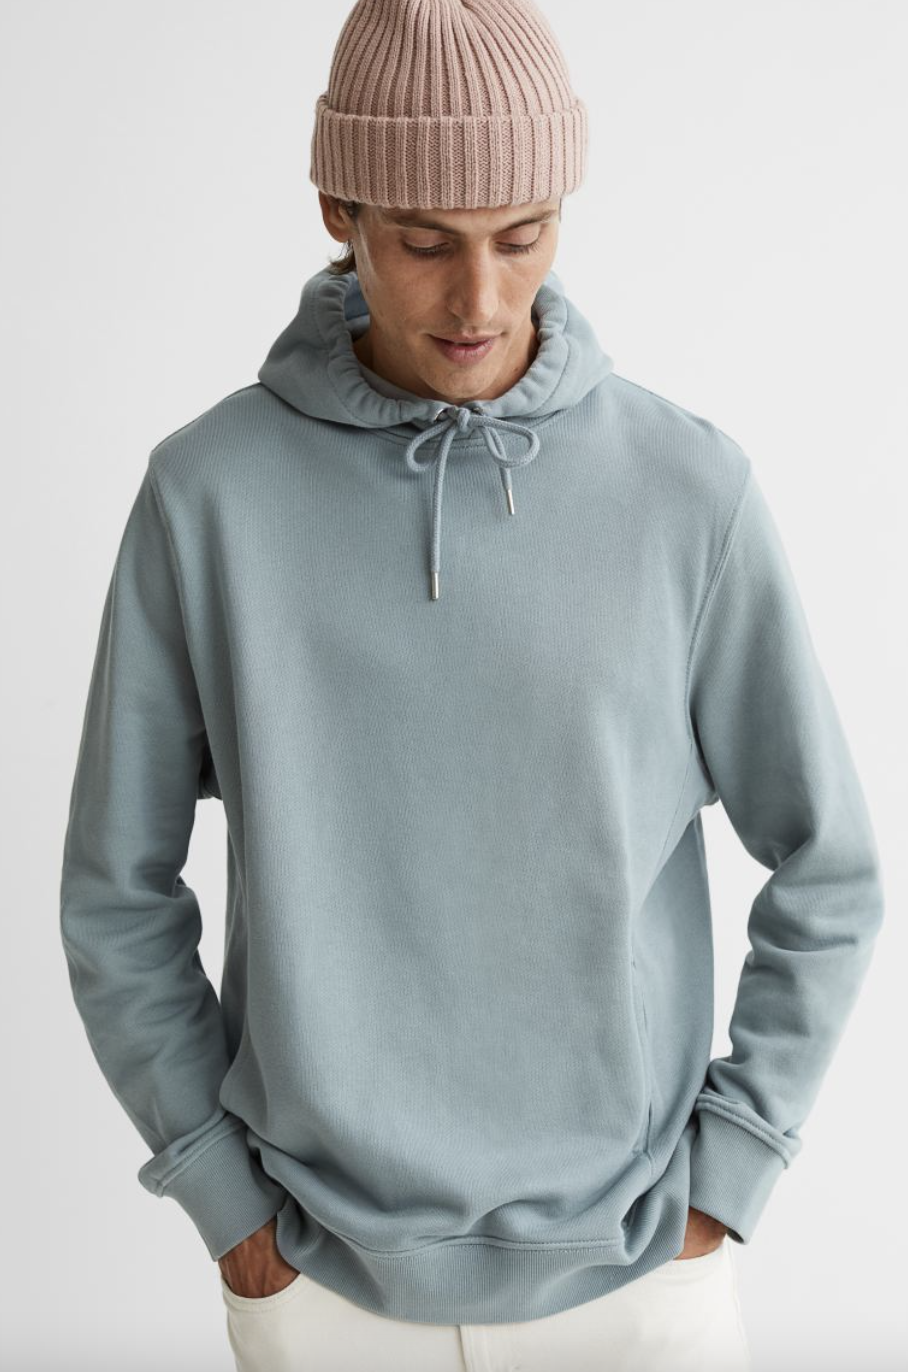 male model wearing light pink hat and Regular Fit Hoodie in Turquoise